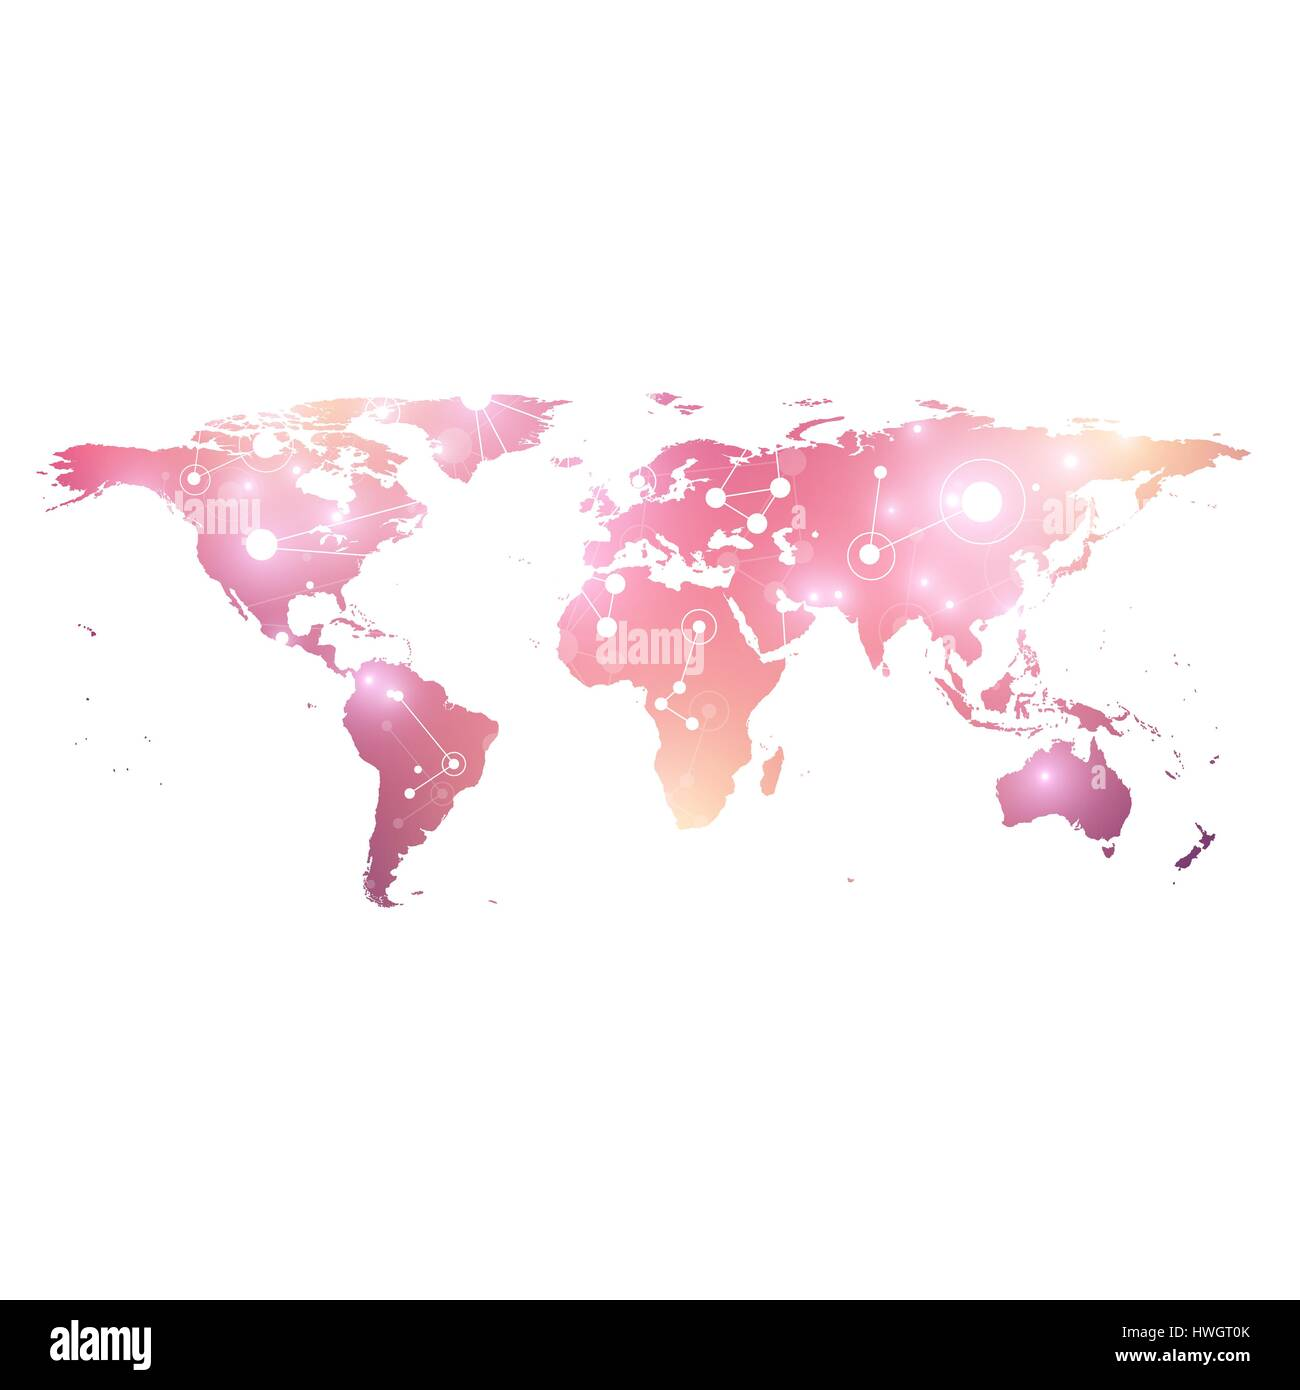 World map geometric graphic background communication big data world map geometric graphic background communication big data complex with compounds perspective graphic backdrop digital data visualization gumiabroncs Choice Image